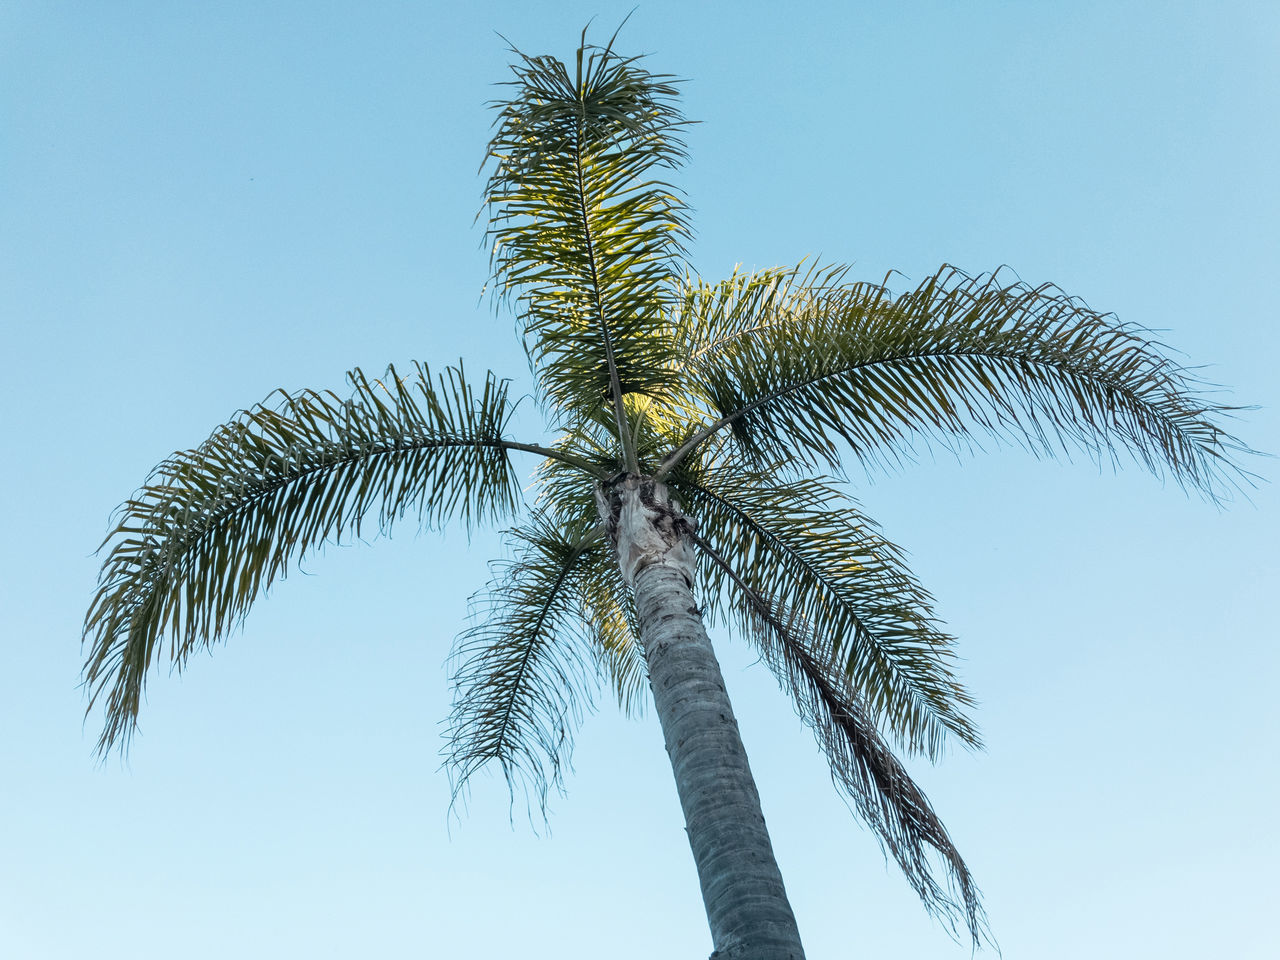 Palm tree. Santa Cruz, California, USA. Photo by Tom Bland. Blue Blue Sky California Clear Sky Day Exotic Growth Holiday In The Sun IPhone IPhoneography Looking Up Low Angle View Nature Outdoors Palm Palm Tree Palm Trees Santa Cruz Sky Tree Vacation